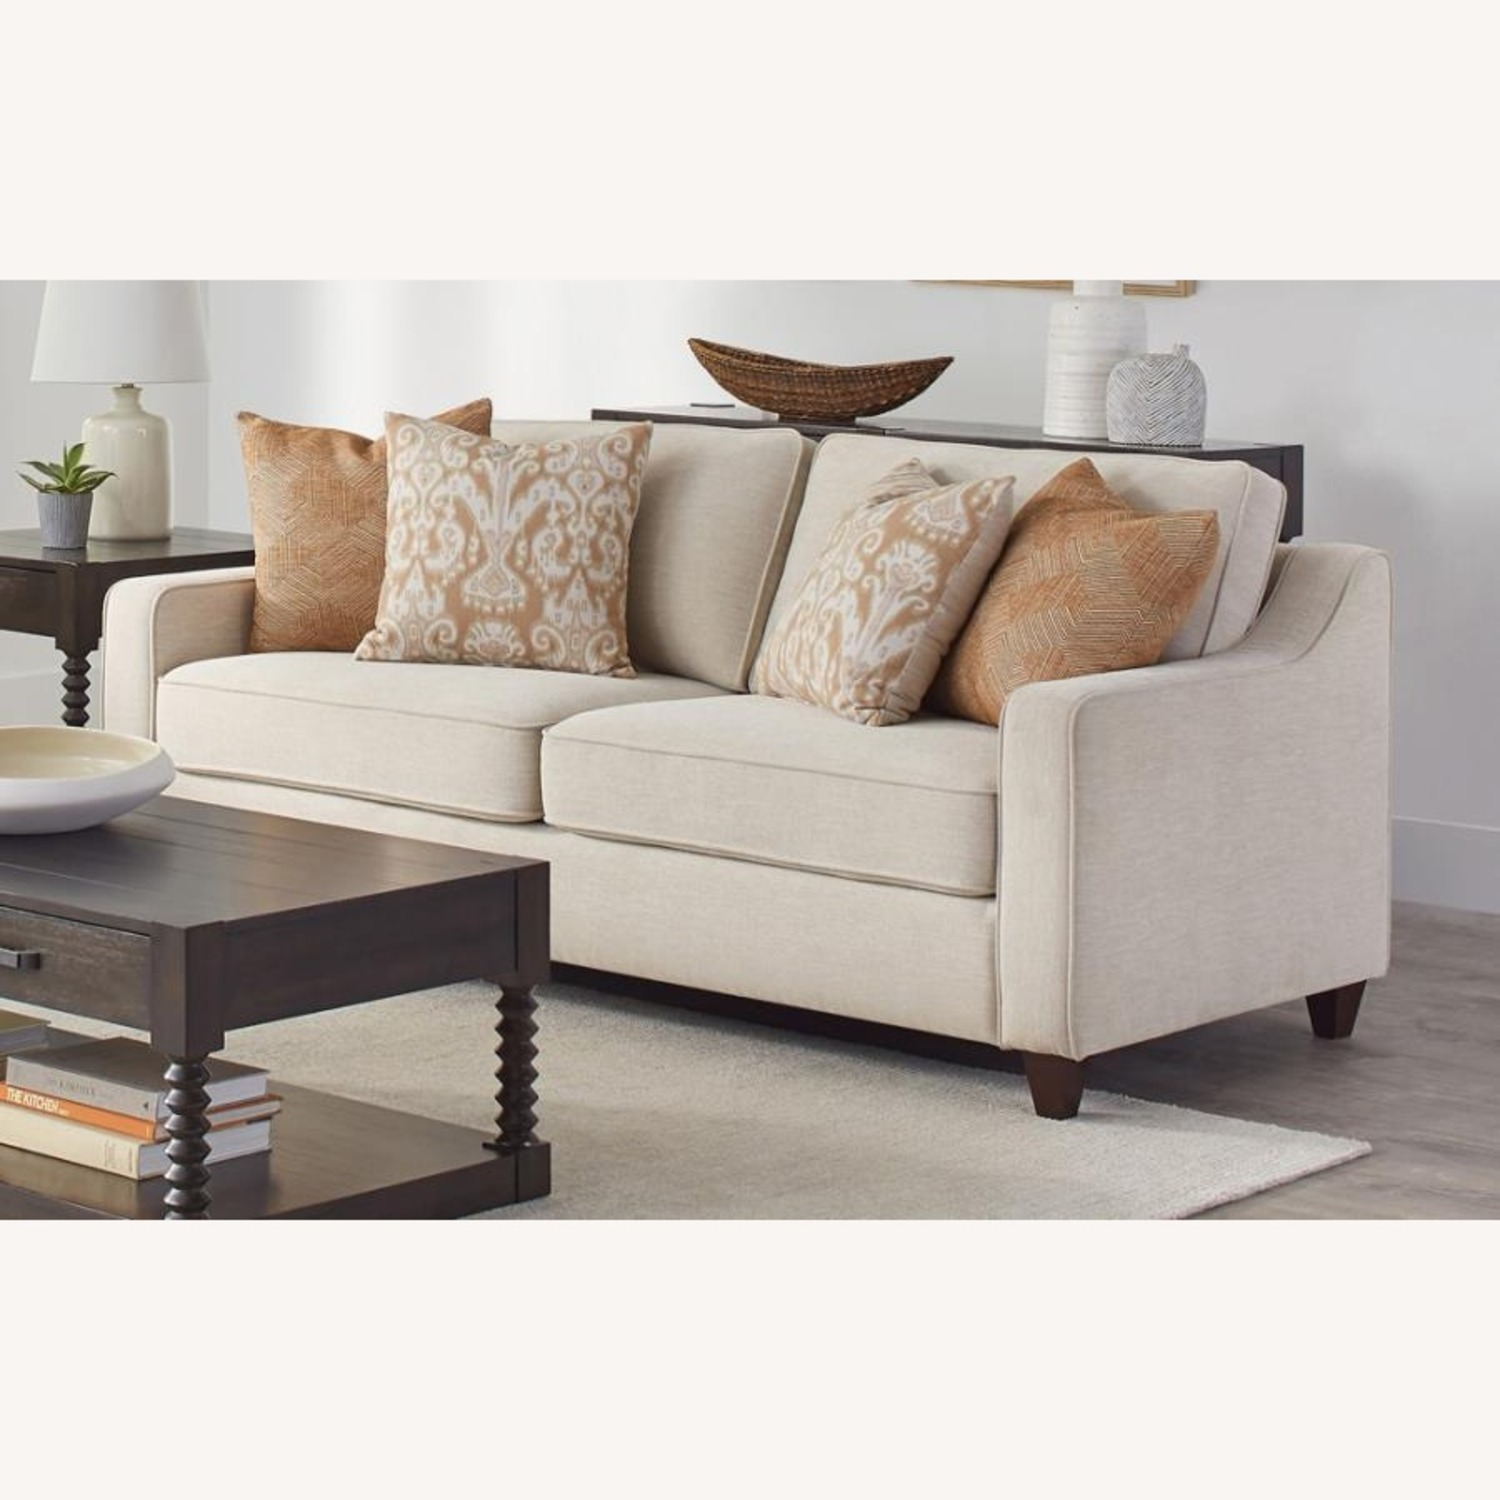 Sofa In Textured Beige Woven Chenille Finish - image-1